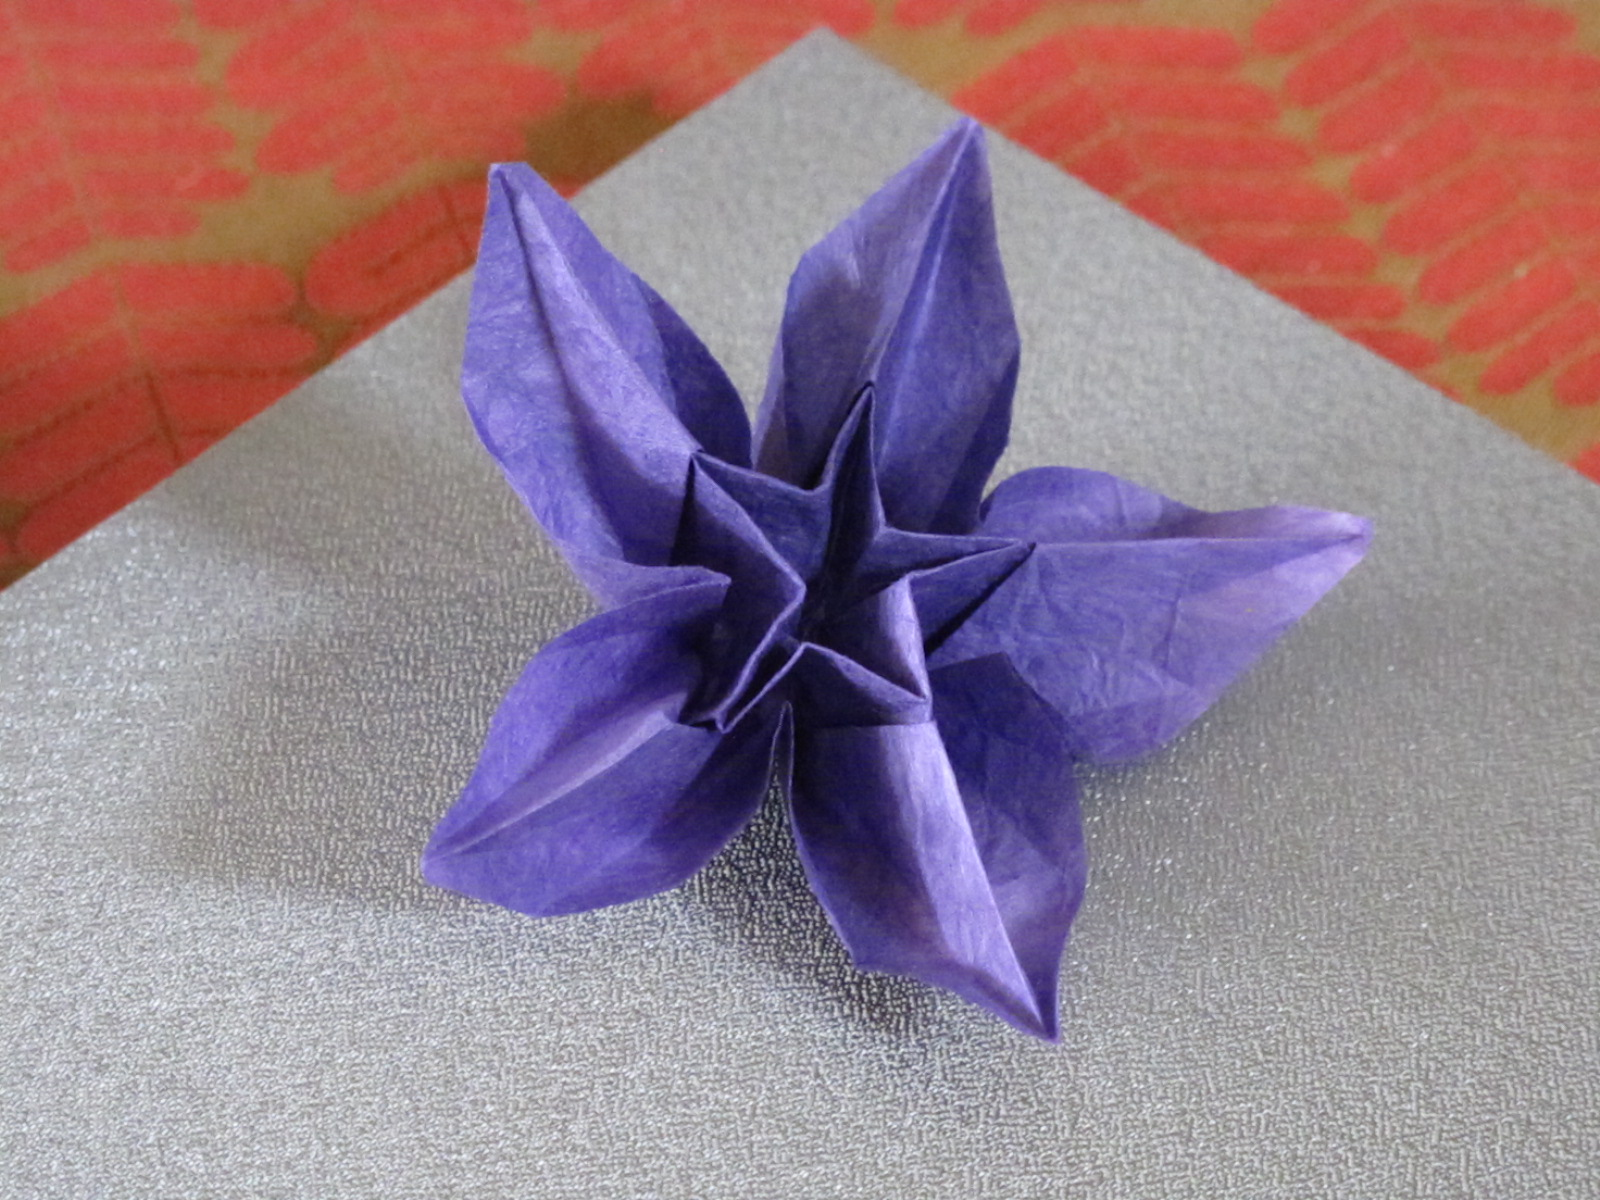 Carambola Flower Origami Diagram 2002 Ford Escape Parts Just Create Every Day Flowers